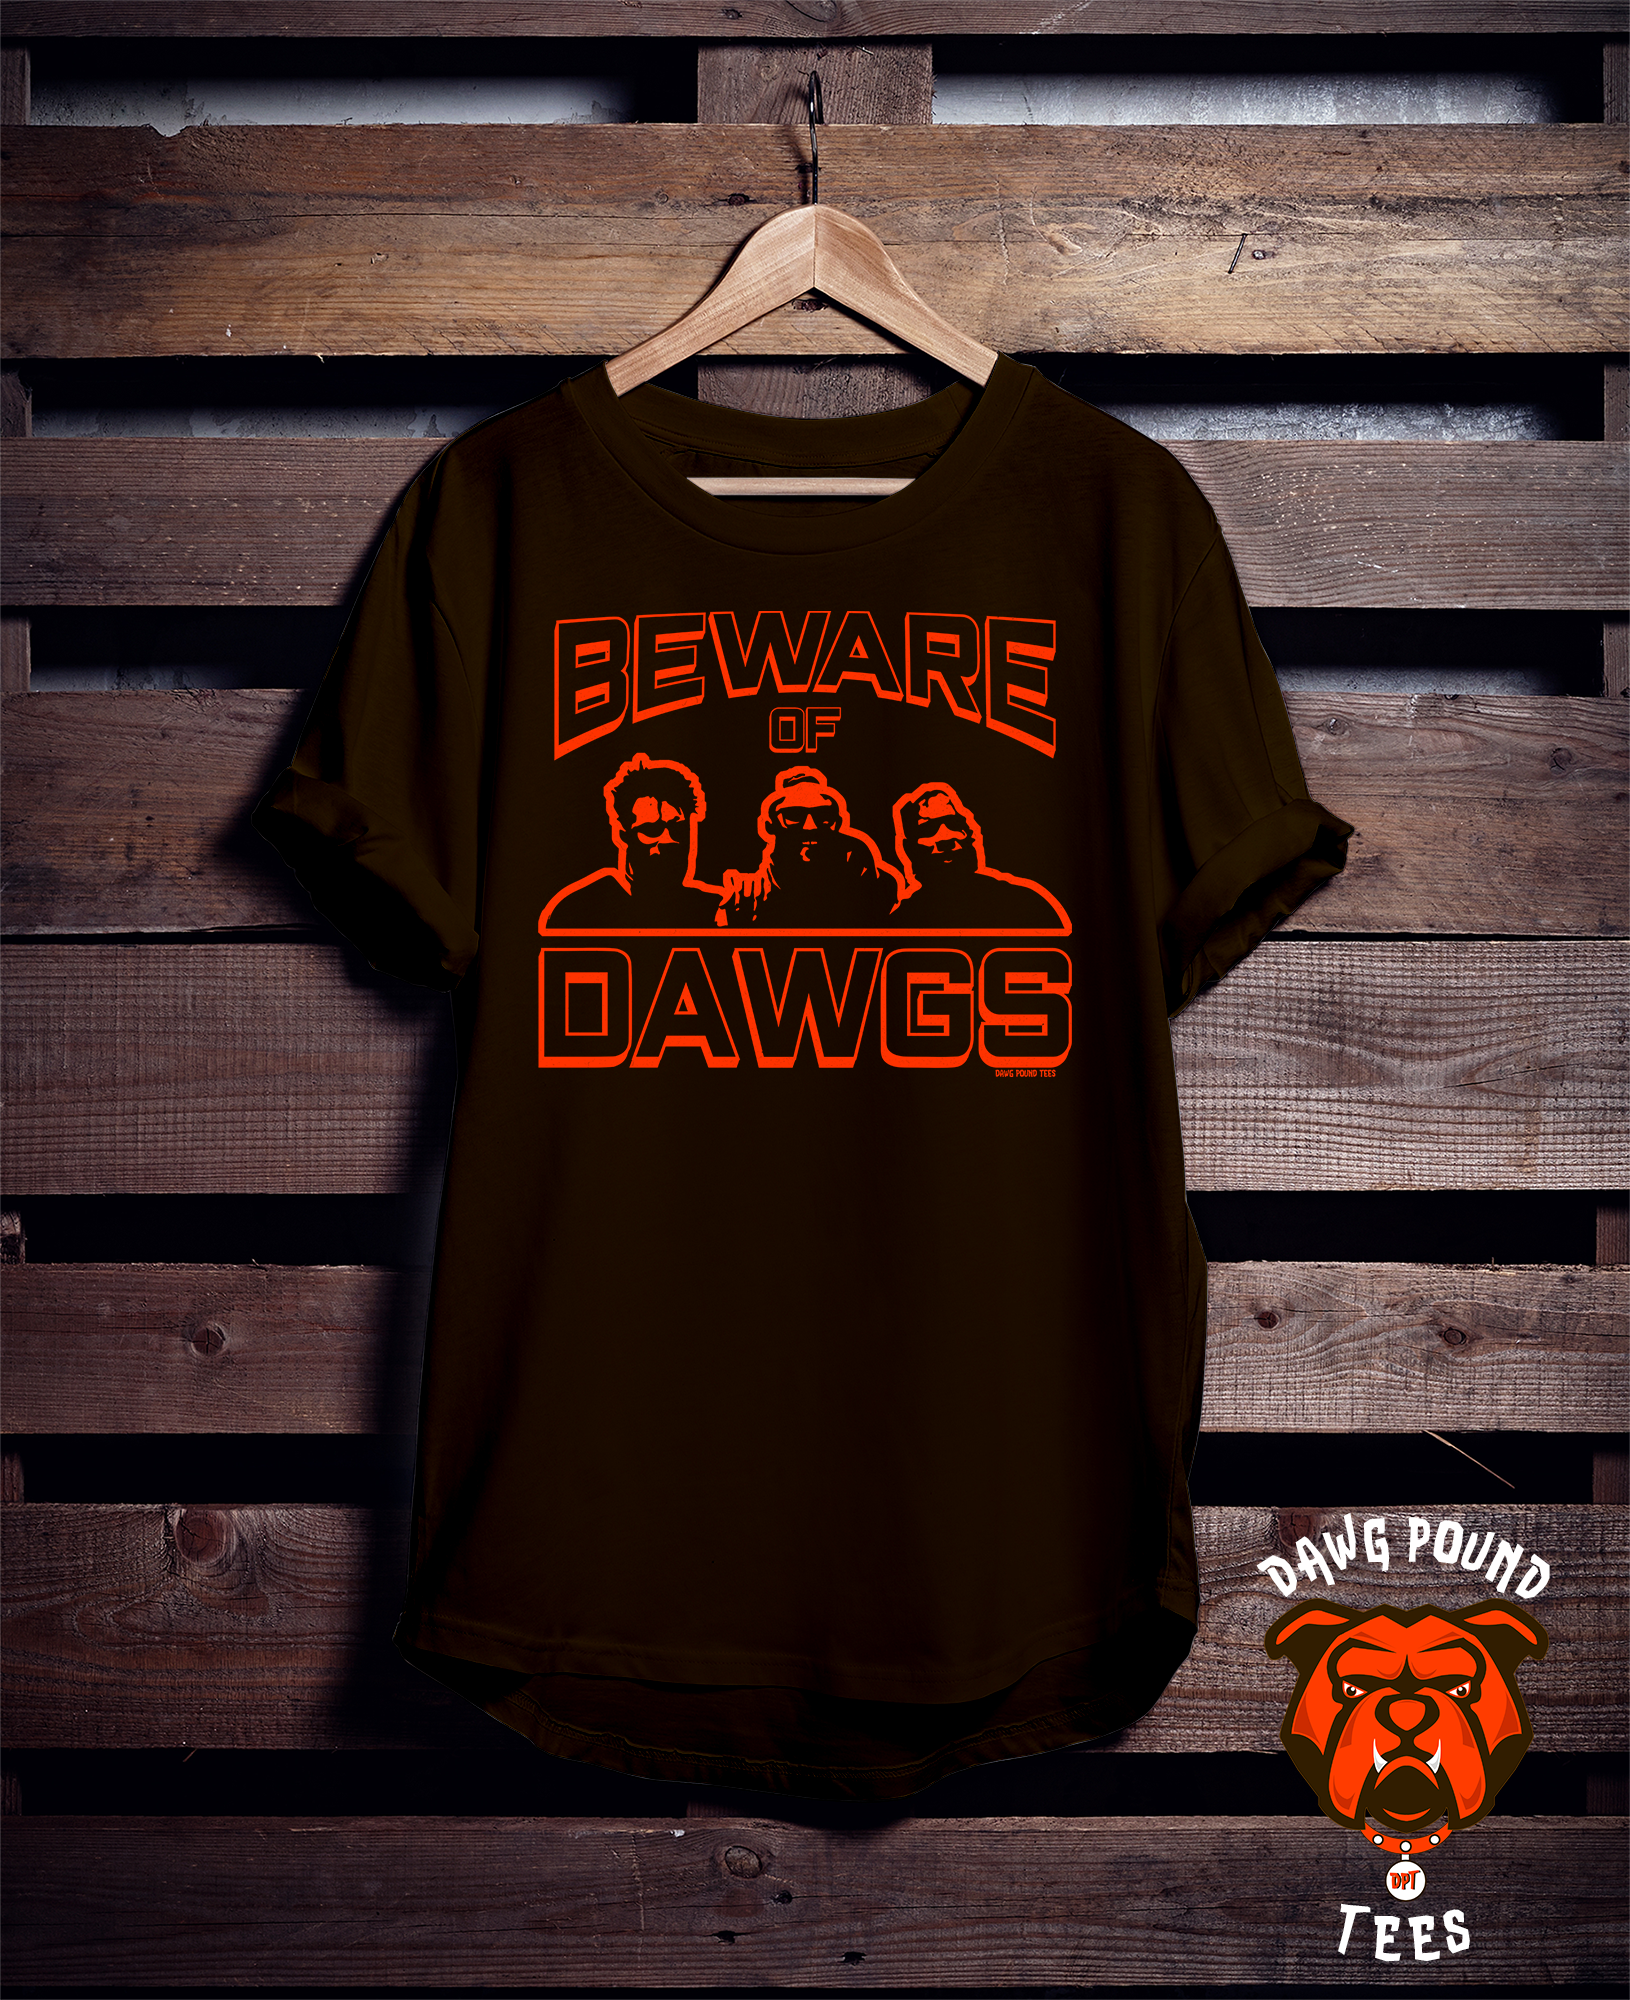 Beware of Dawgs tshirt from Dawg Pound Tees. Great shirt